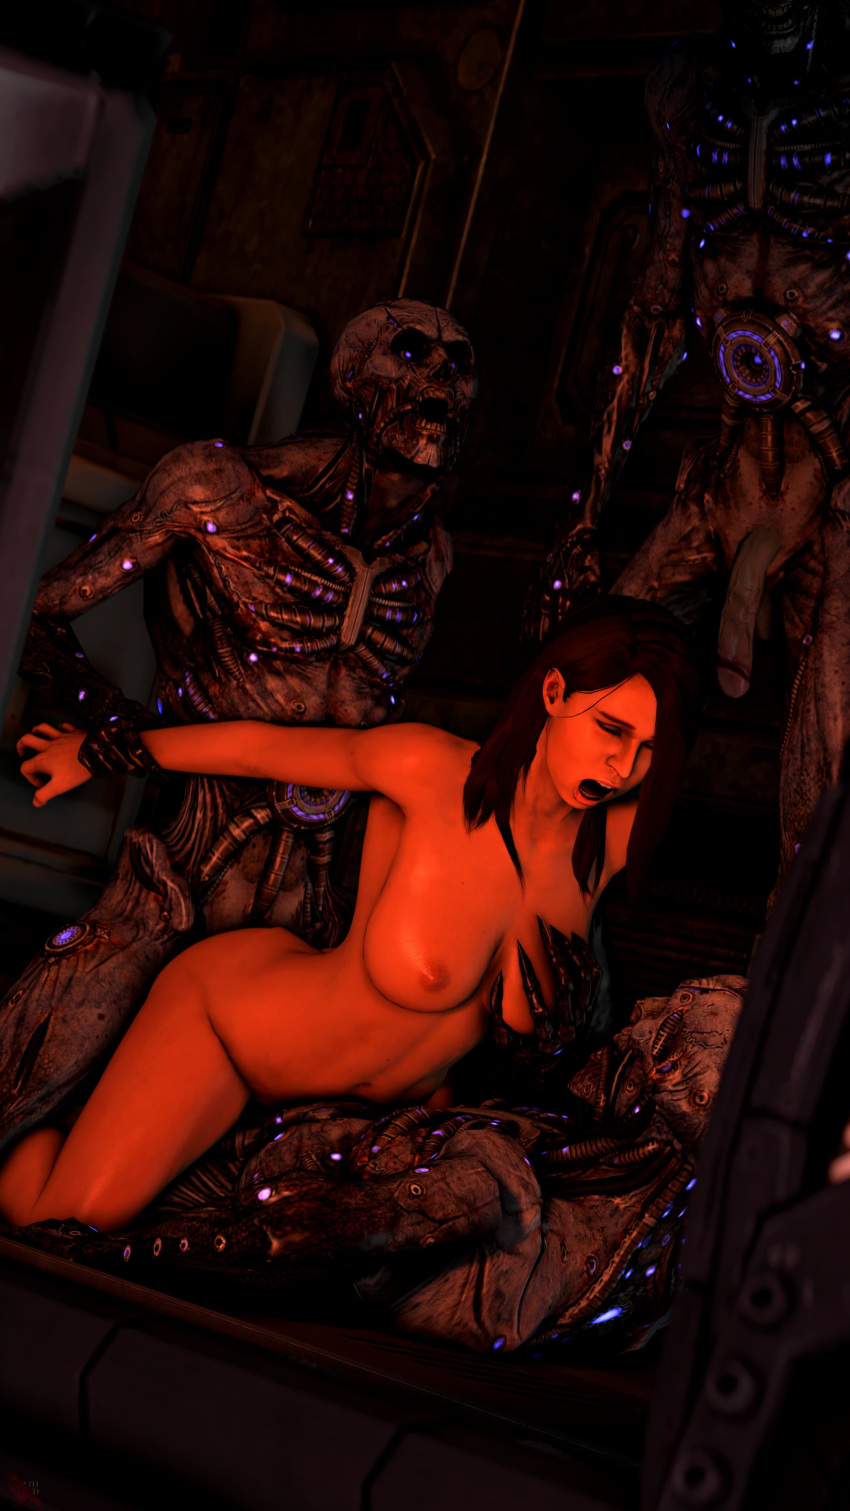 andromeda mass cora effect naked Rick griffin a&h club